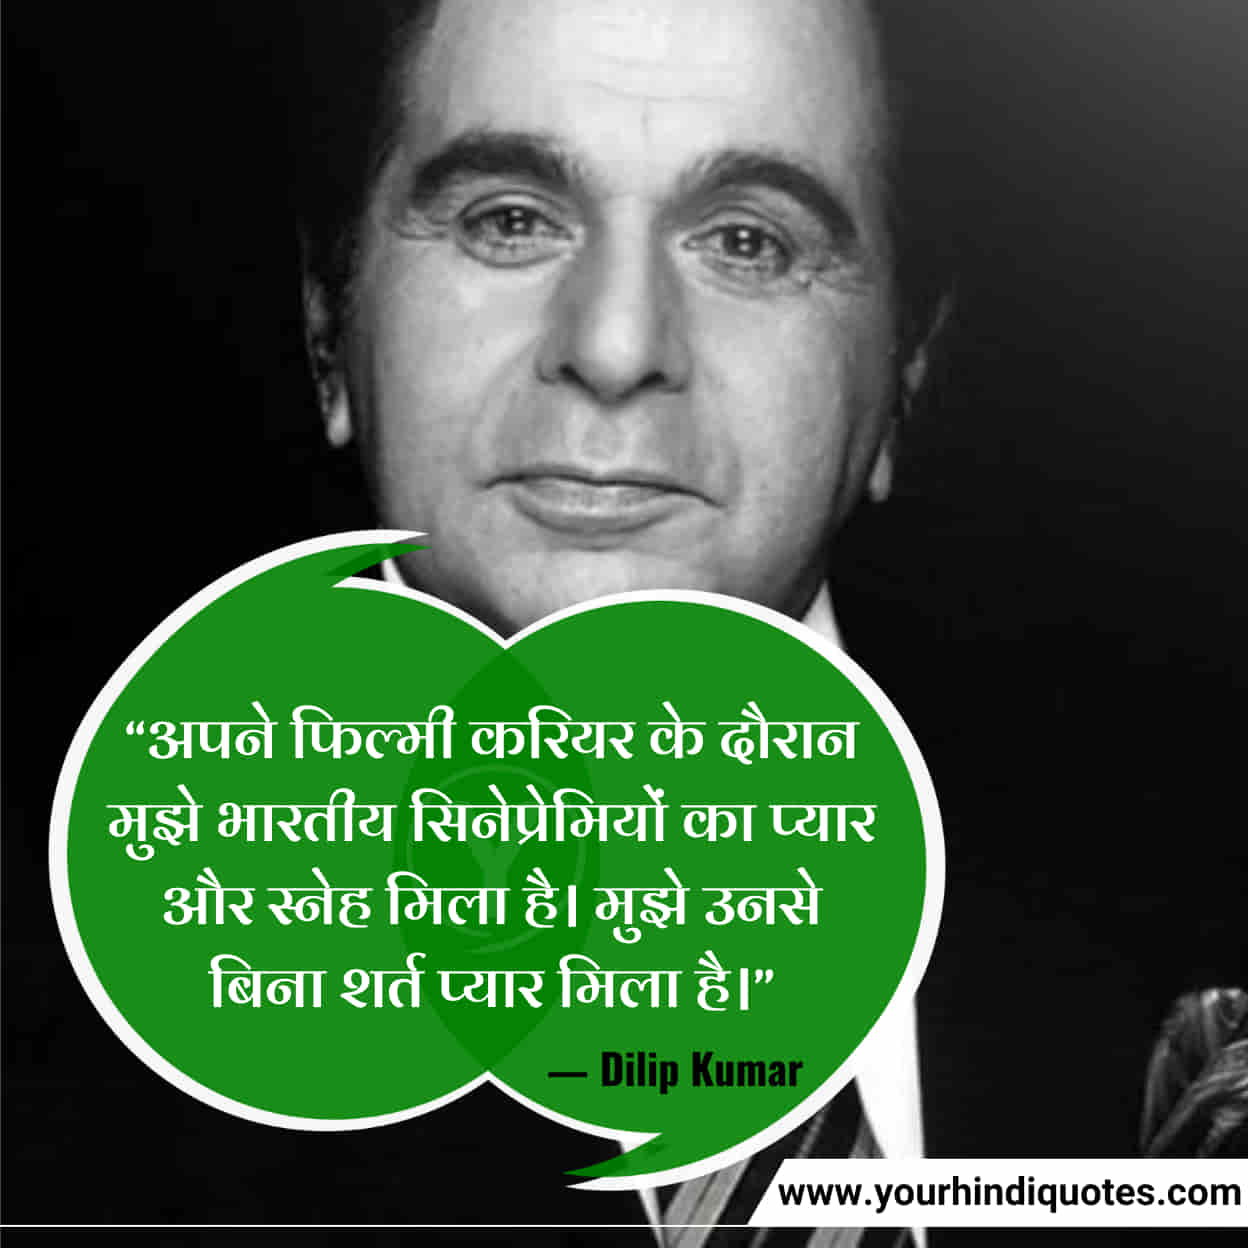 Quotes Of Dilip Kumar